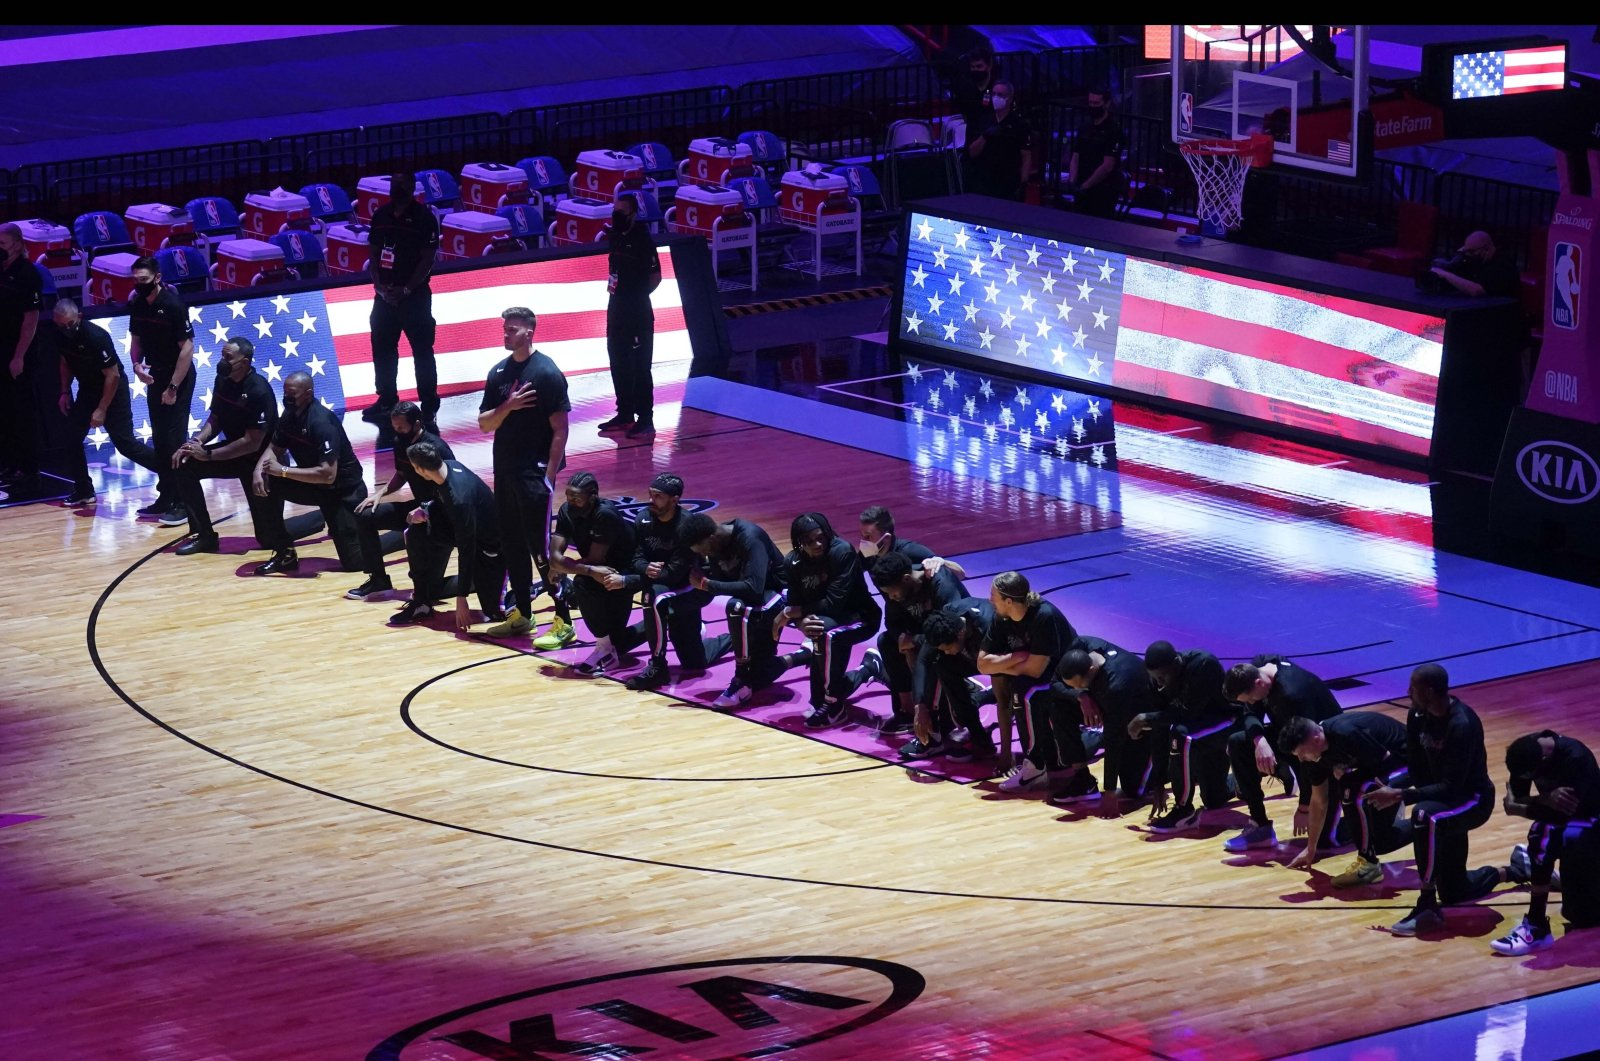 The Boston Celtics team kneels during the U.S. National Anthem before an NBA game against the Miami Heat, in Miami, U.S., Jan. 6, 2021. (AP Photo)